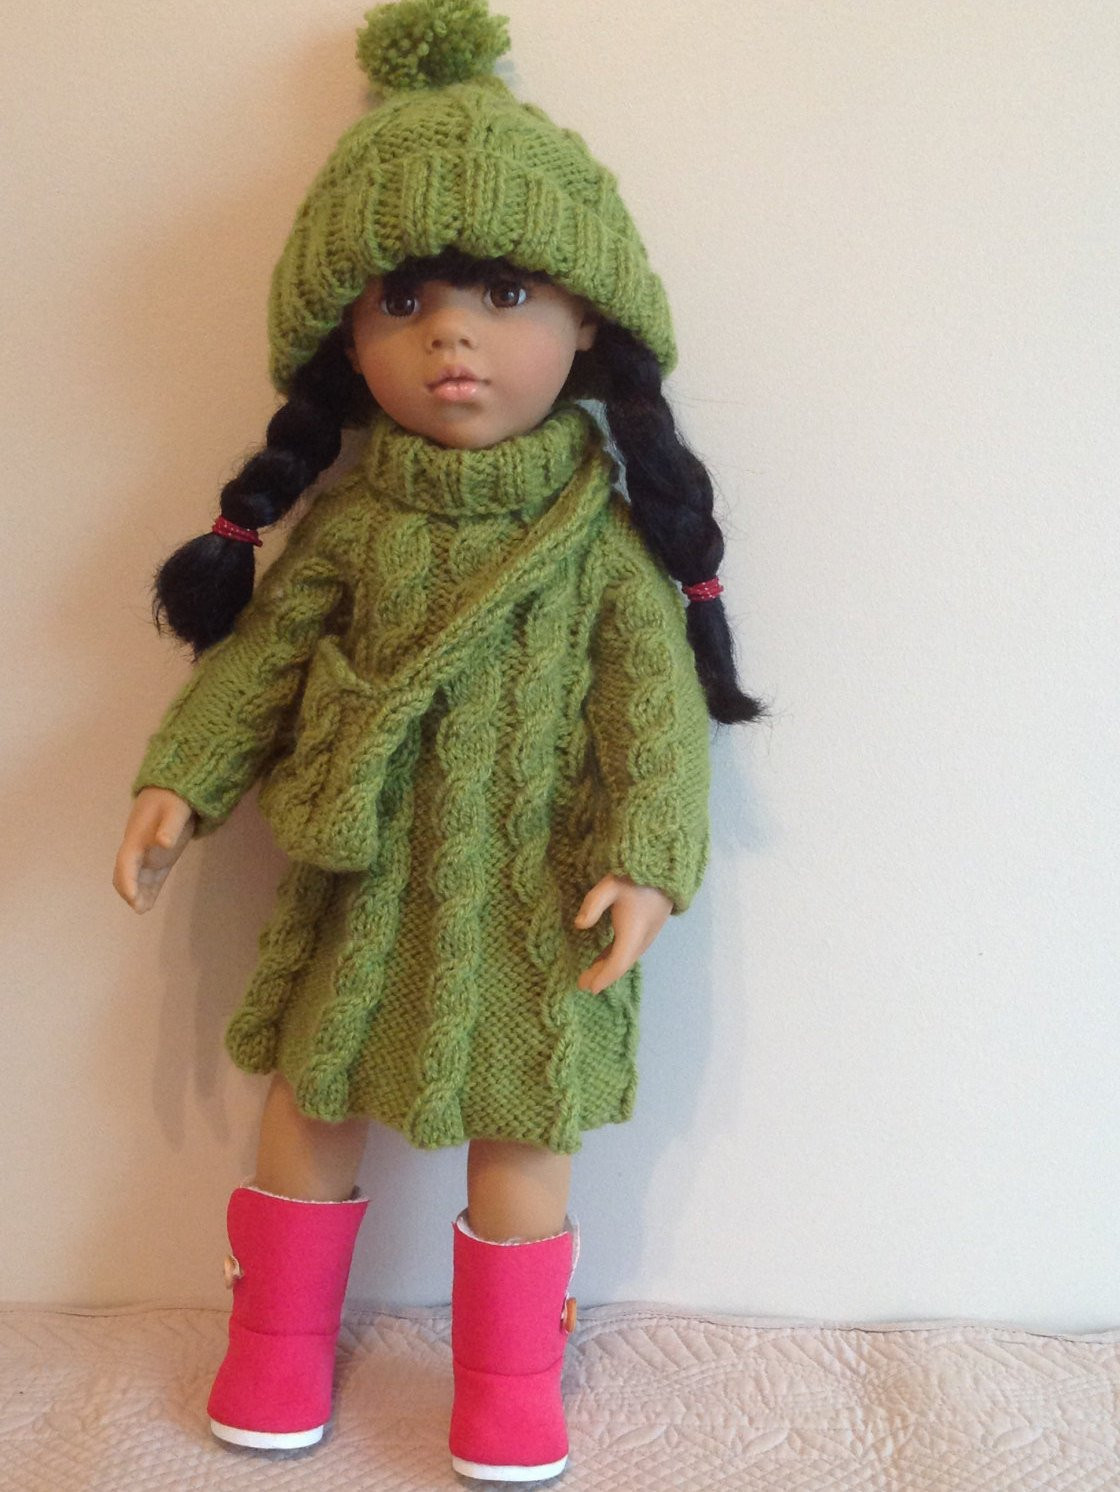 Doll Patterns New Dolls Fashion Clothes Knitting Pattern 18 Doll Will Of Doll Patterns Luxury Dolls Patterns Free Free Patterns